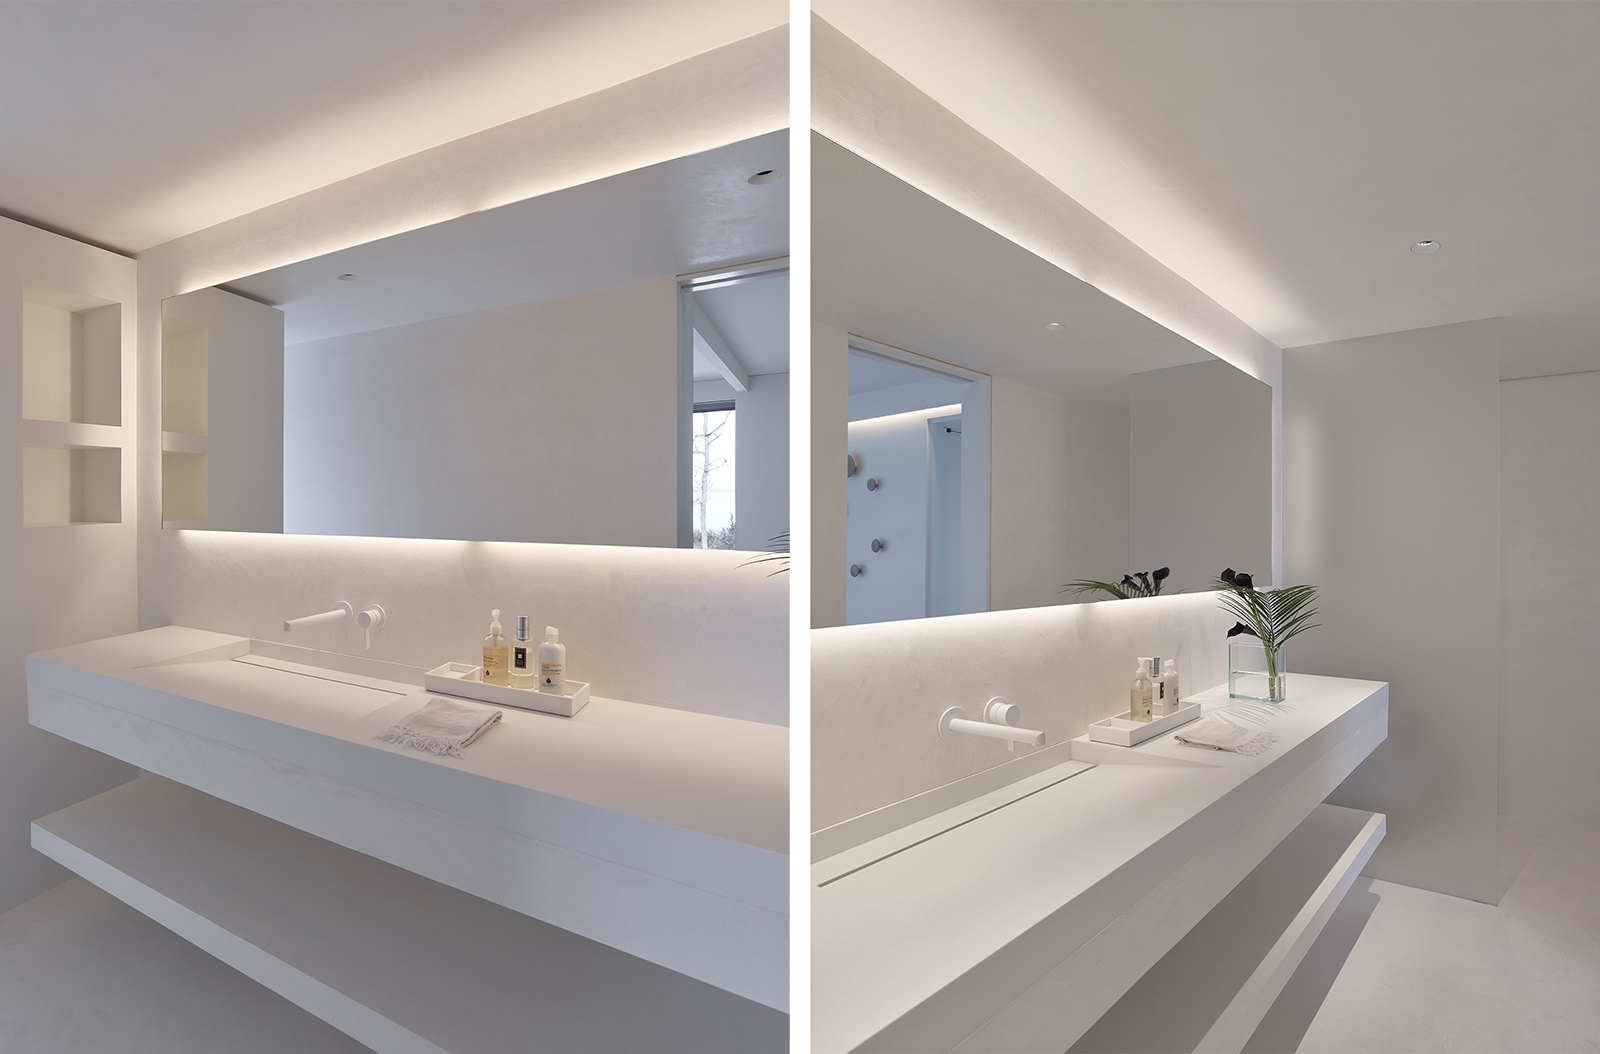 Bathroom Modern All-white cove lighting